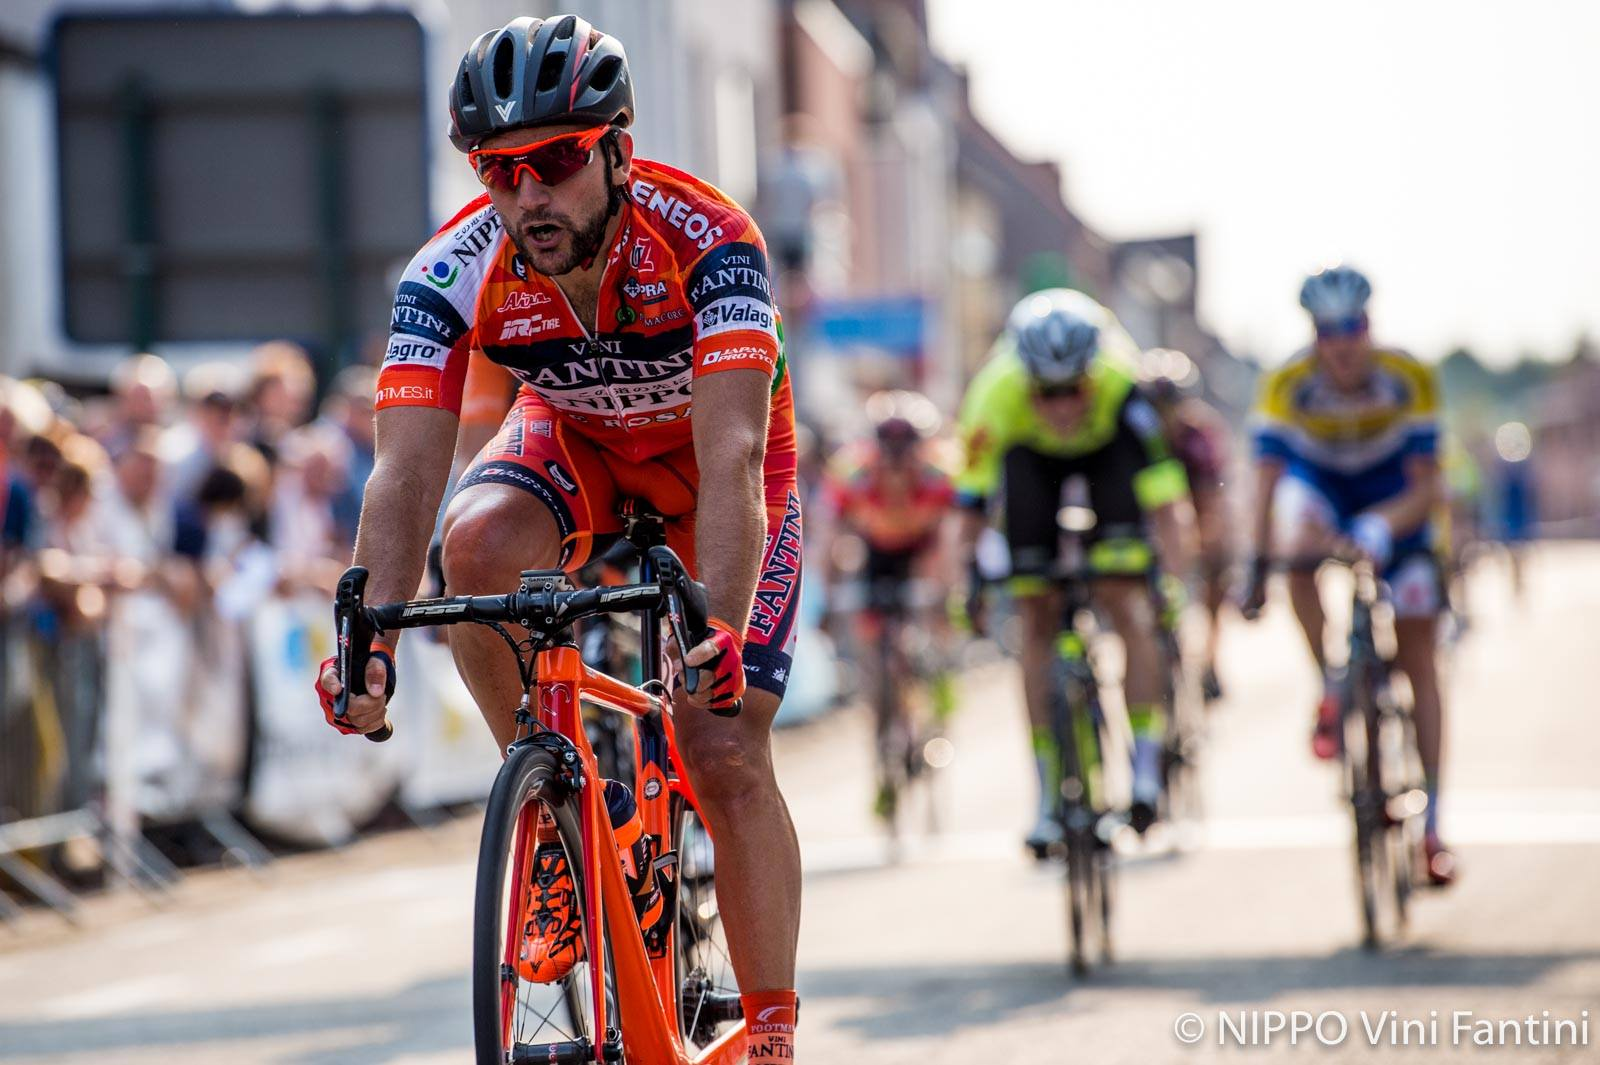 Pierpaolo De Negri Fails To Pass Test For Anabolic Steroid Use